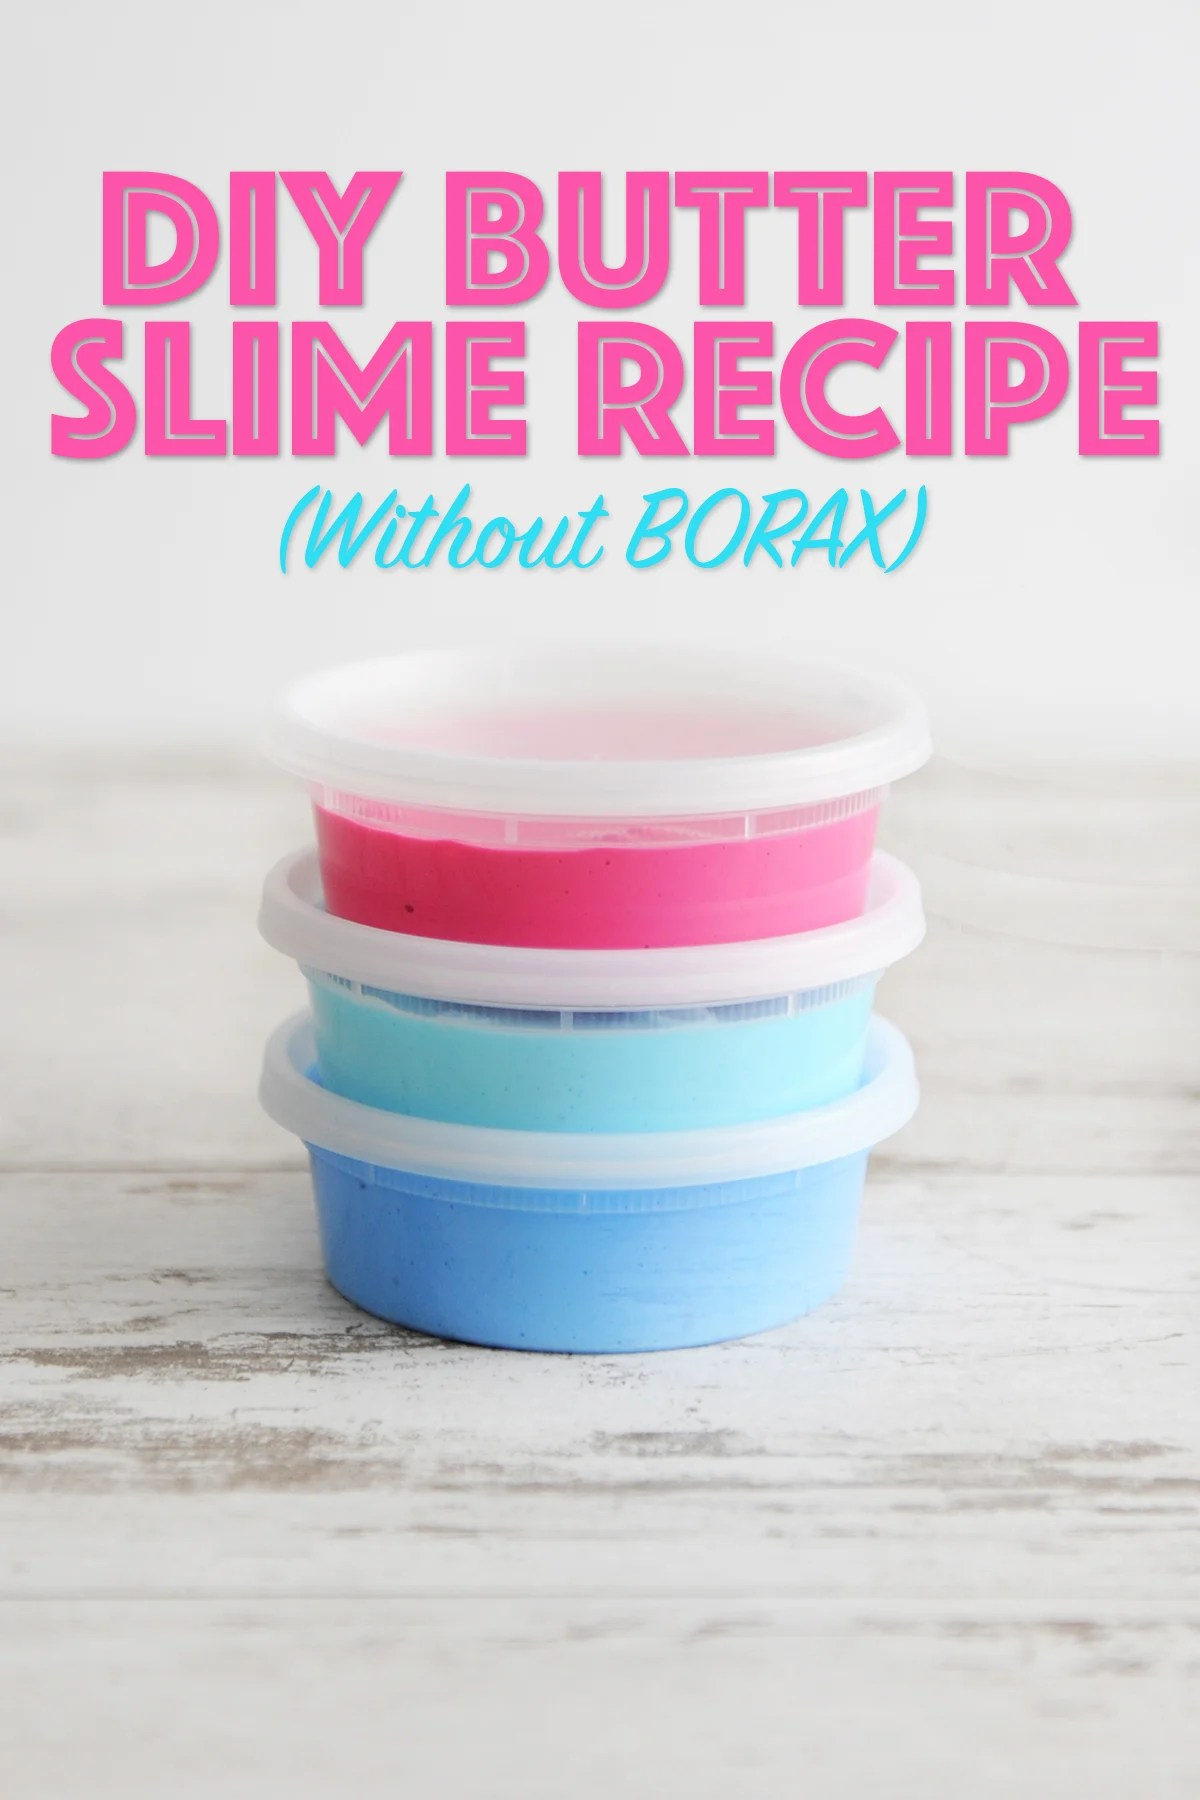 DIY Butter Slime Recipe with No Borax by Tammy Mitchell